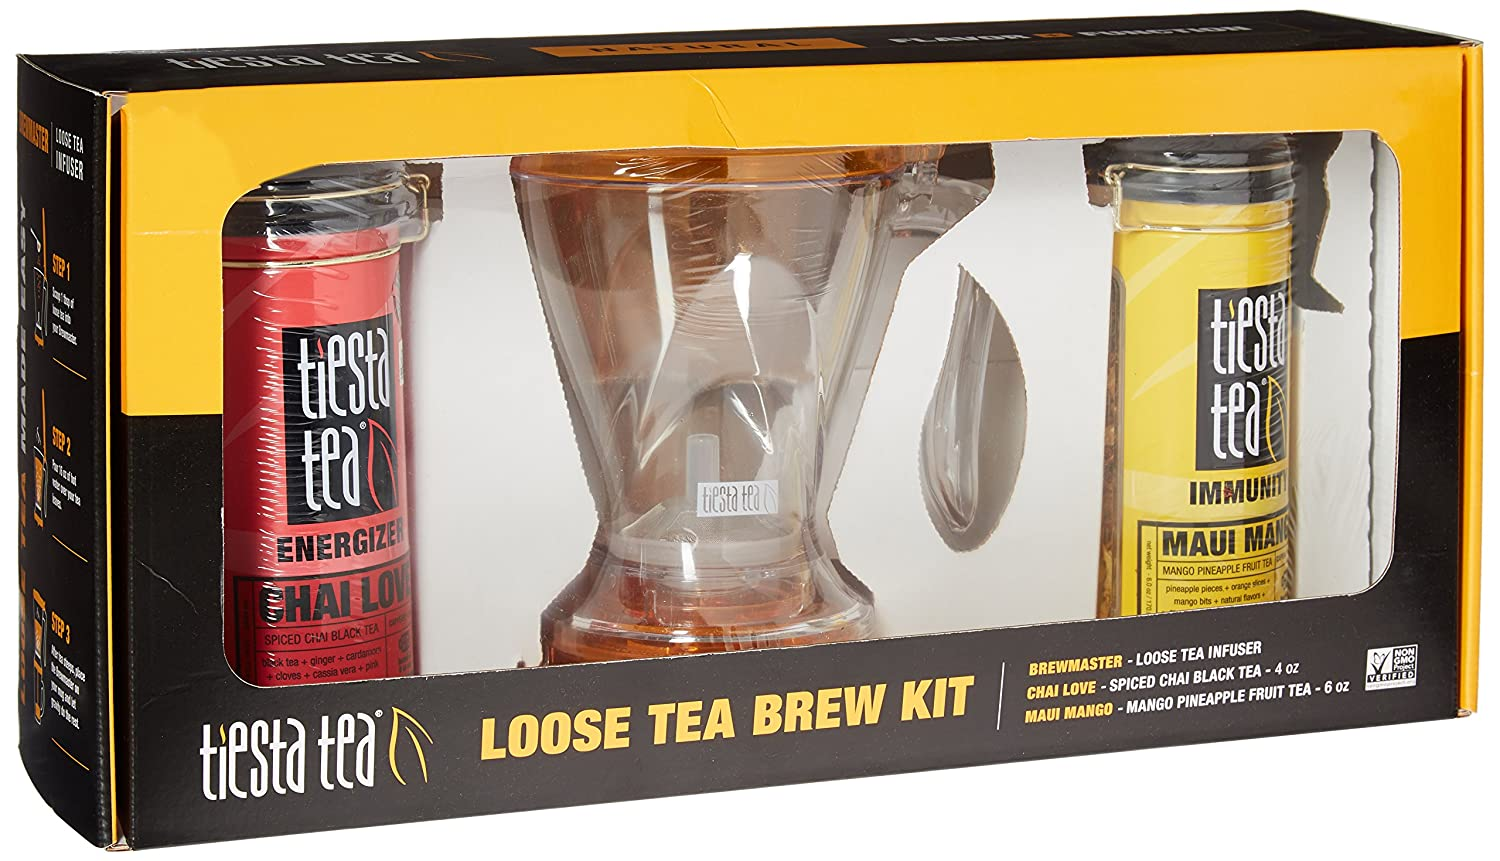 Microwave and Dishwasher Safe BREWMASTER BPA Free 16 Ounce Tea Steeper TEA INFUSER by TIESTA TEA